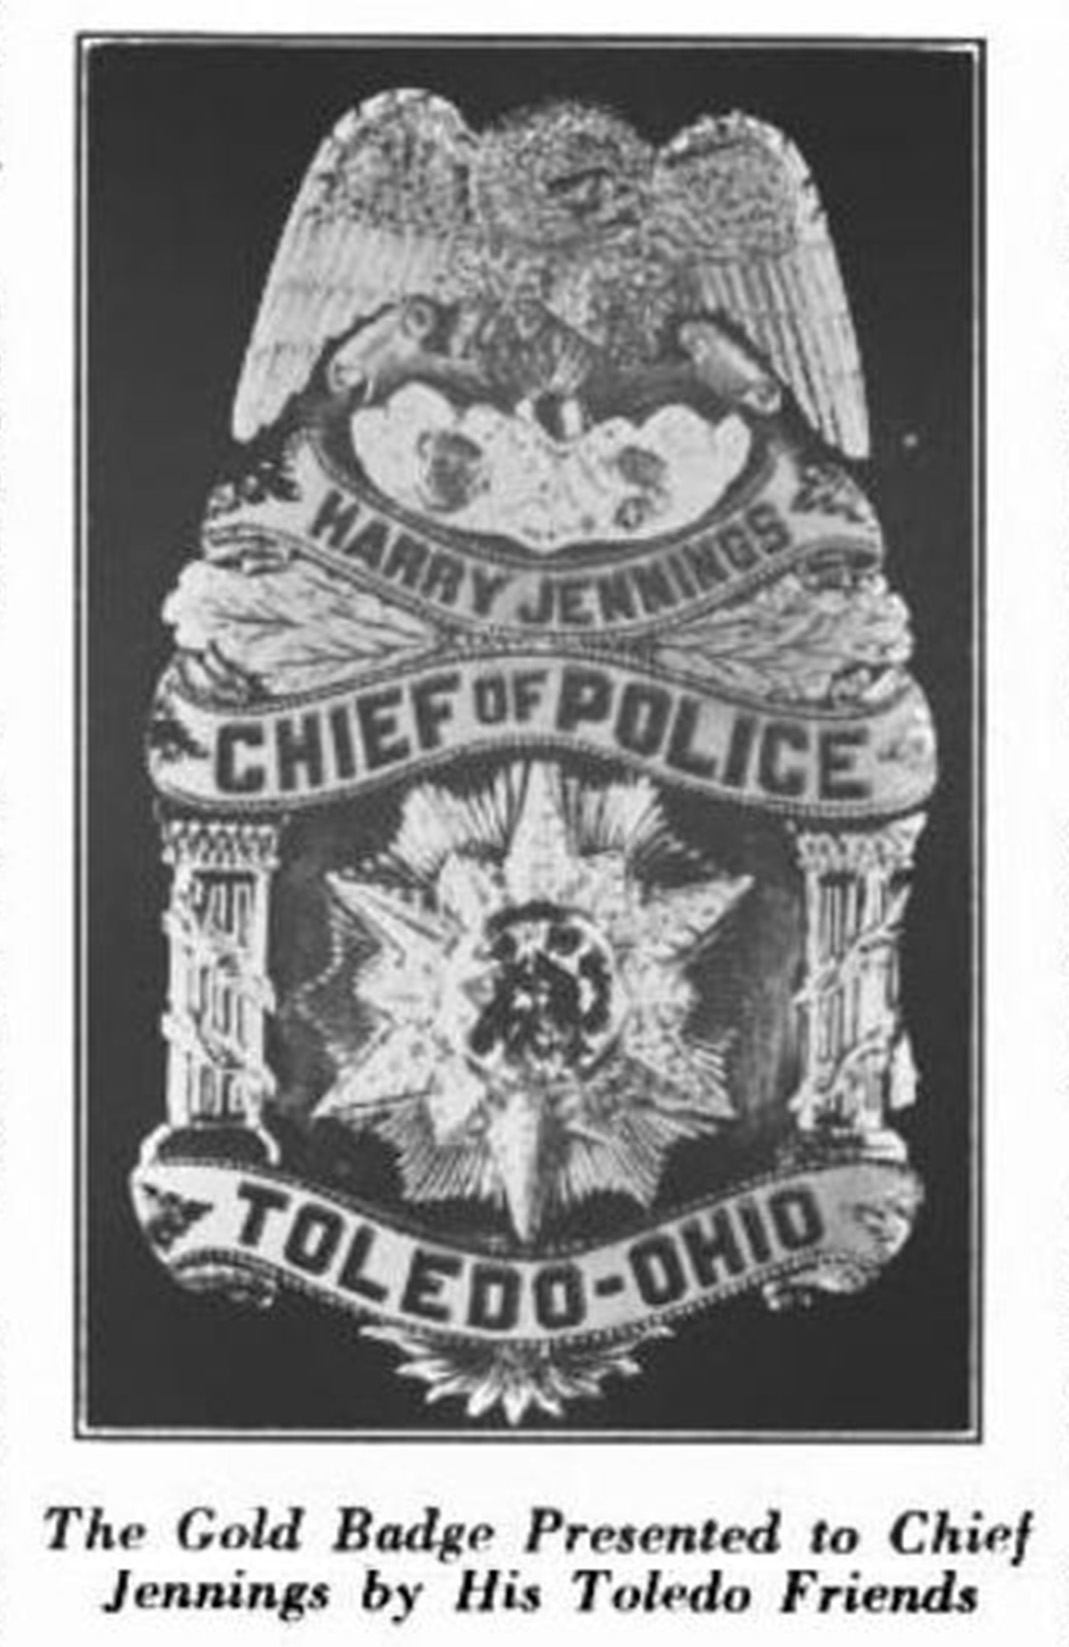 Jennings Badge from 1922 National Police Journal